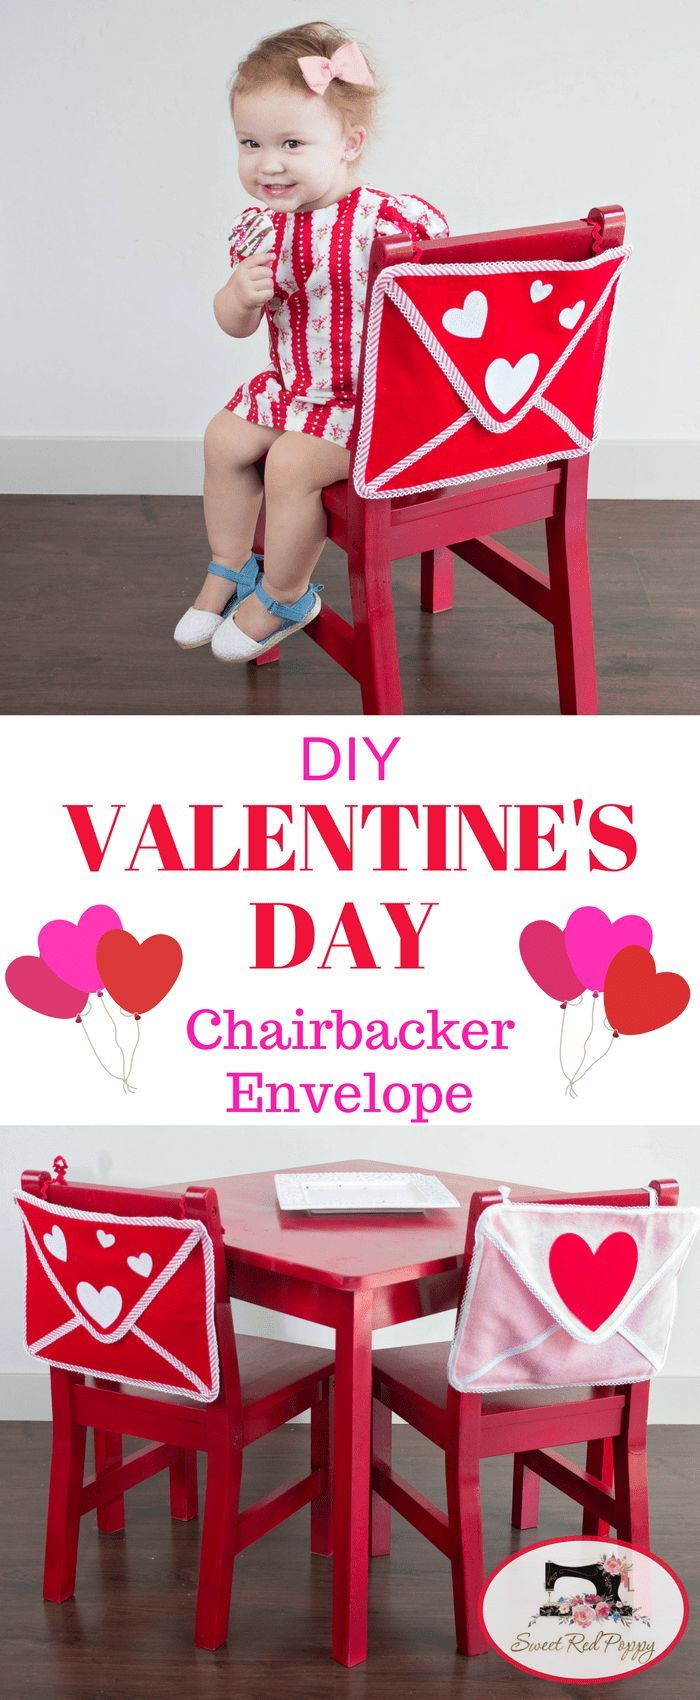 Valentineu0027s Day Chair Backer Envelope Tutorial Pottery